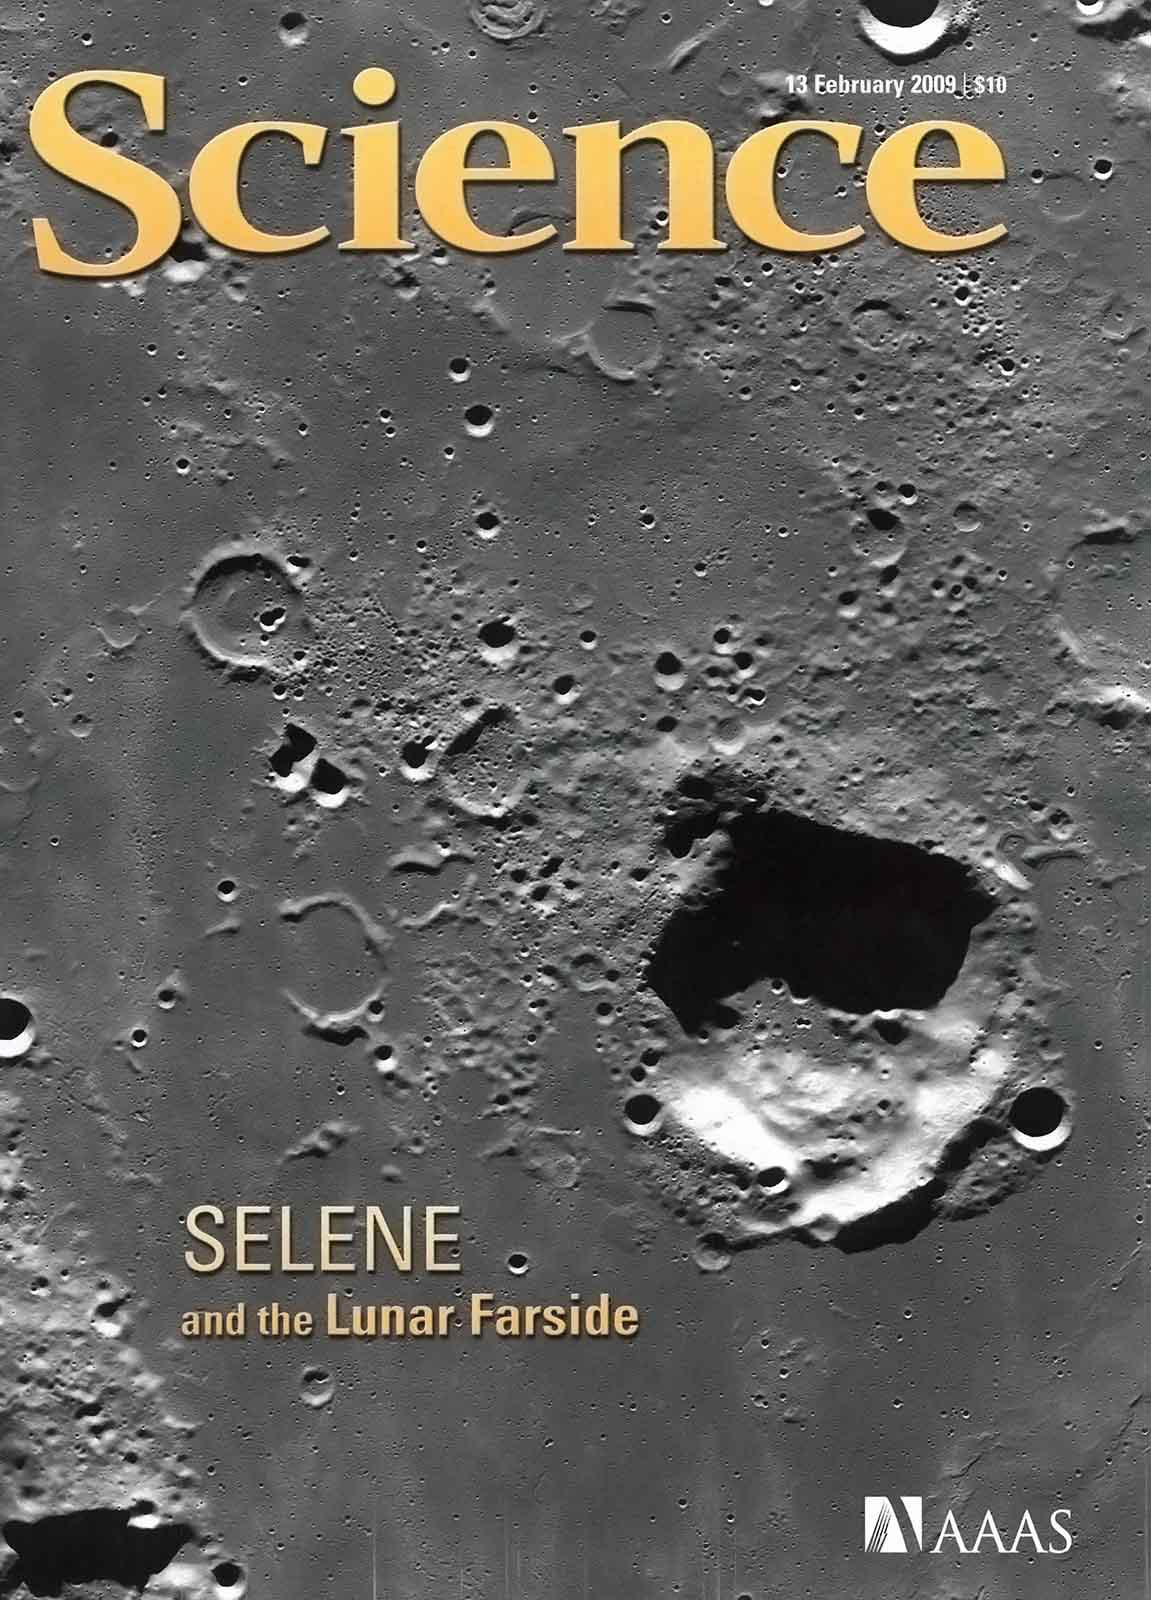 science magazine australia far side 2009